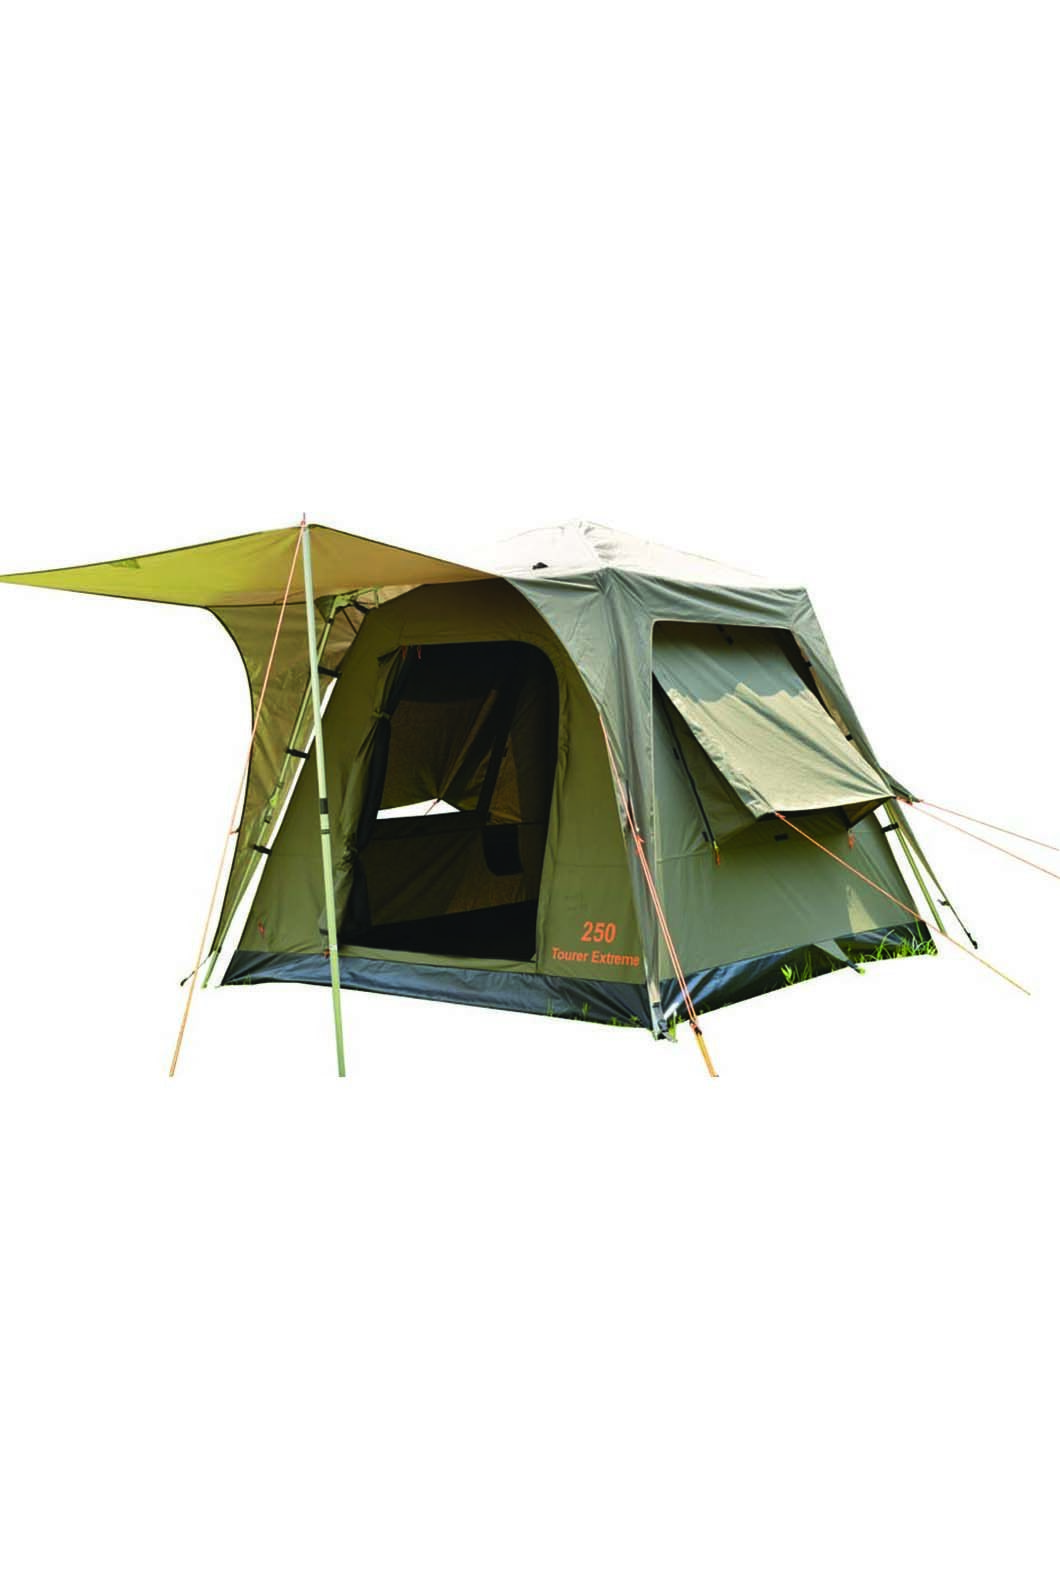 Wanderer Tourer Extreme 250 4-5 Person Touring Tent, None, hi-res